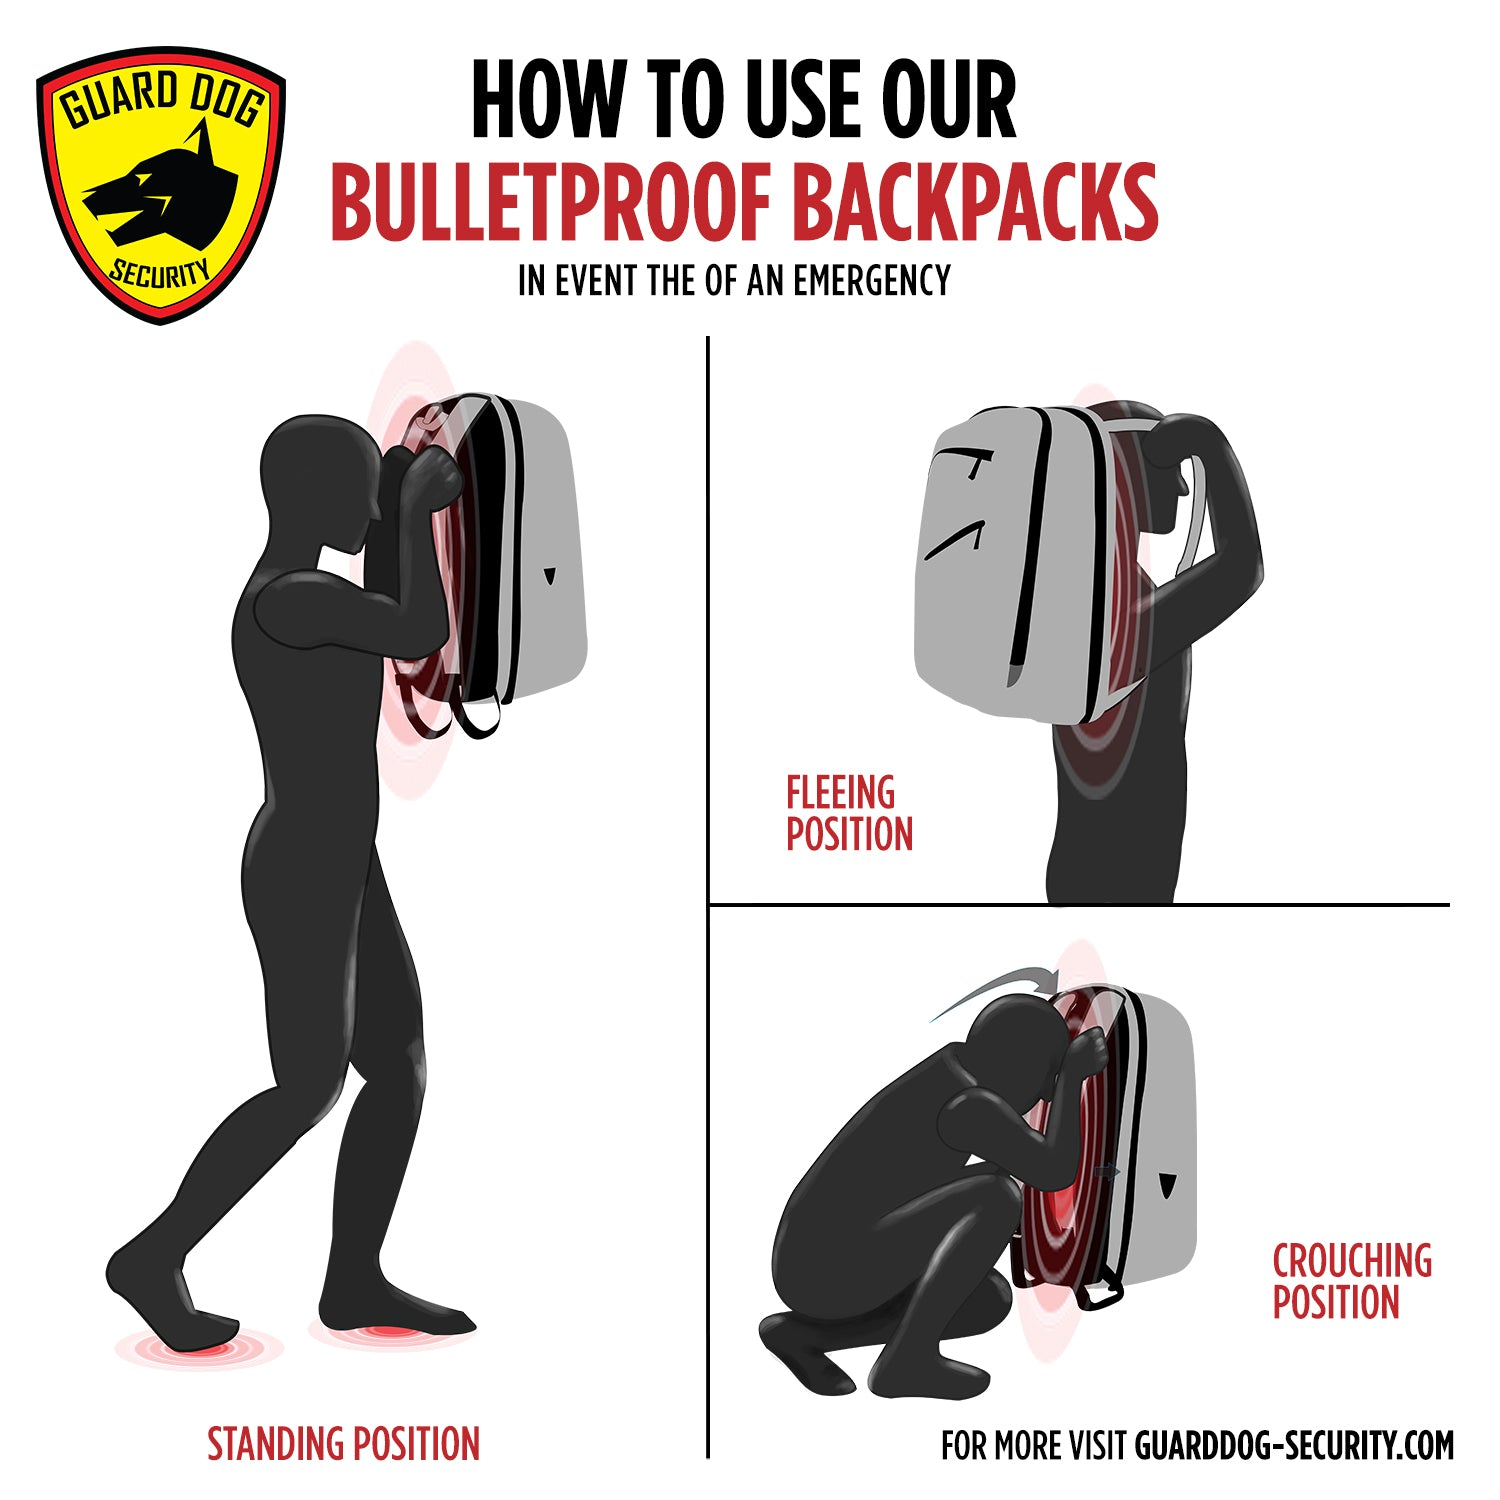 How to use our bulletproof backpacks